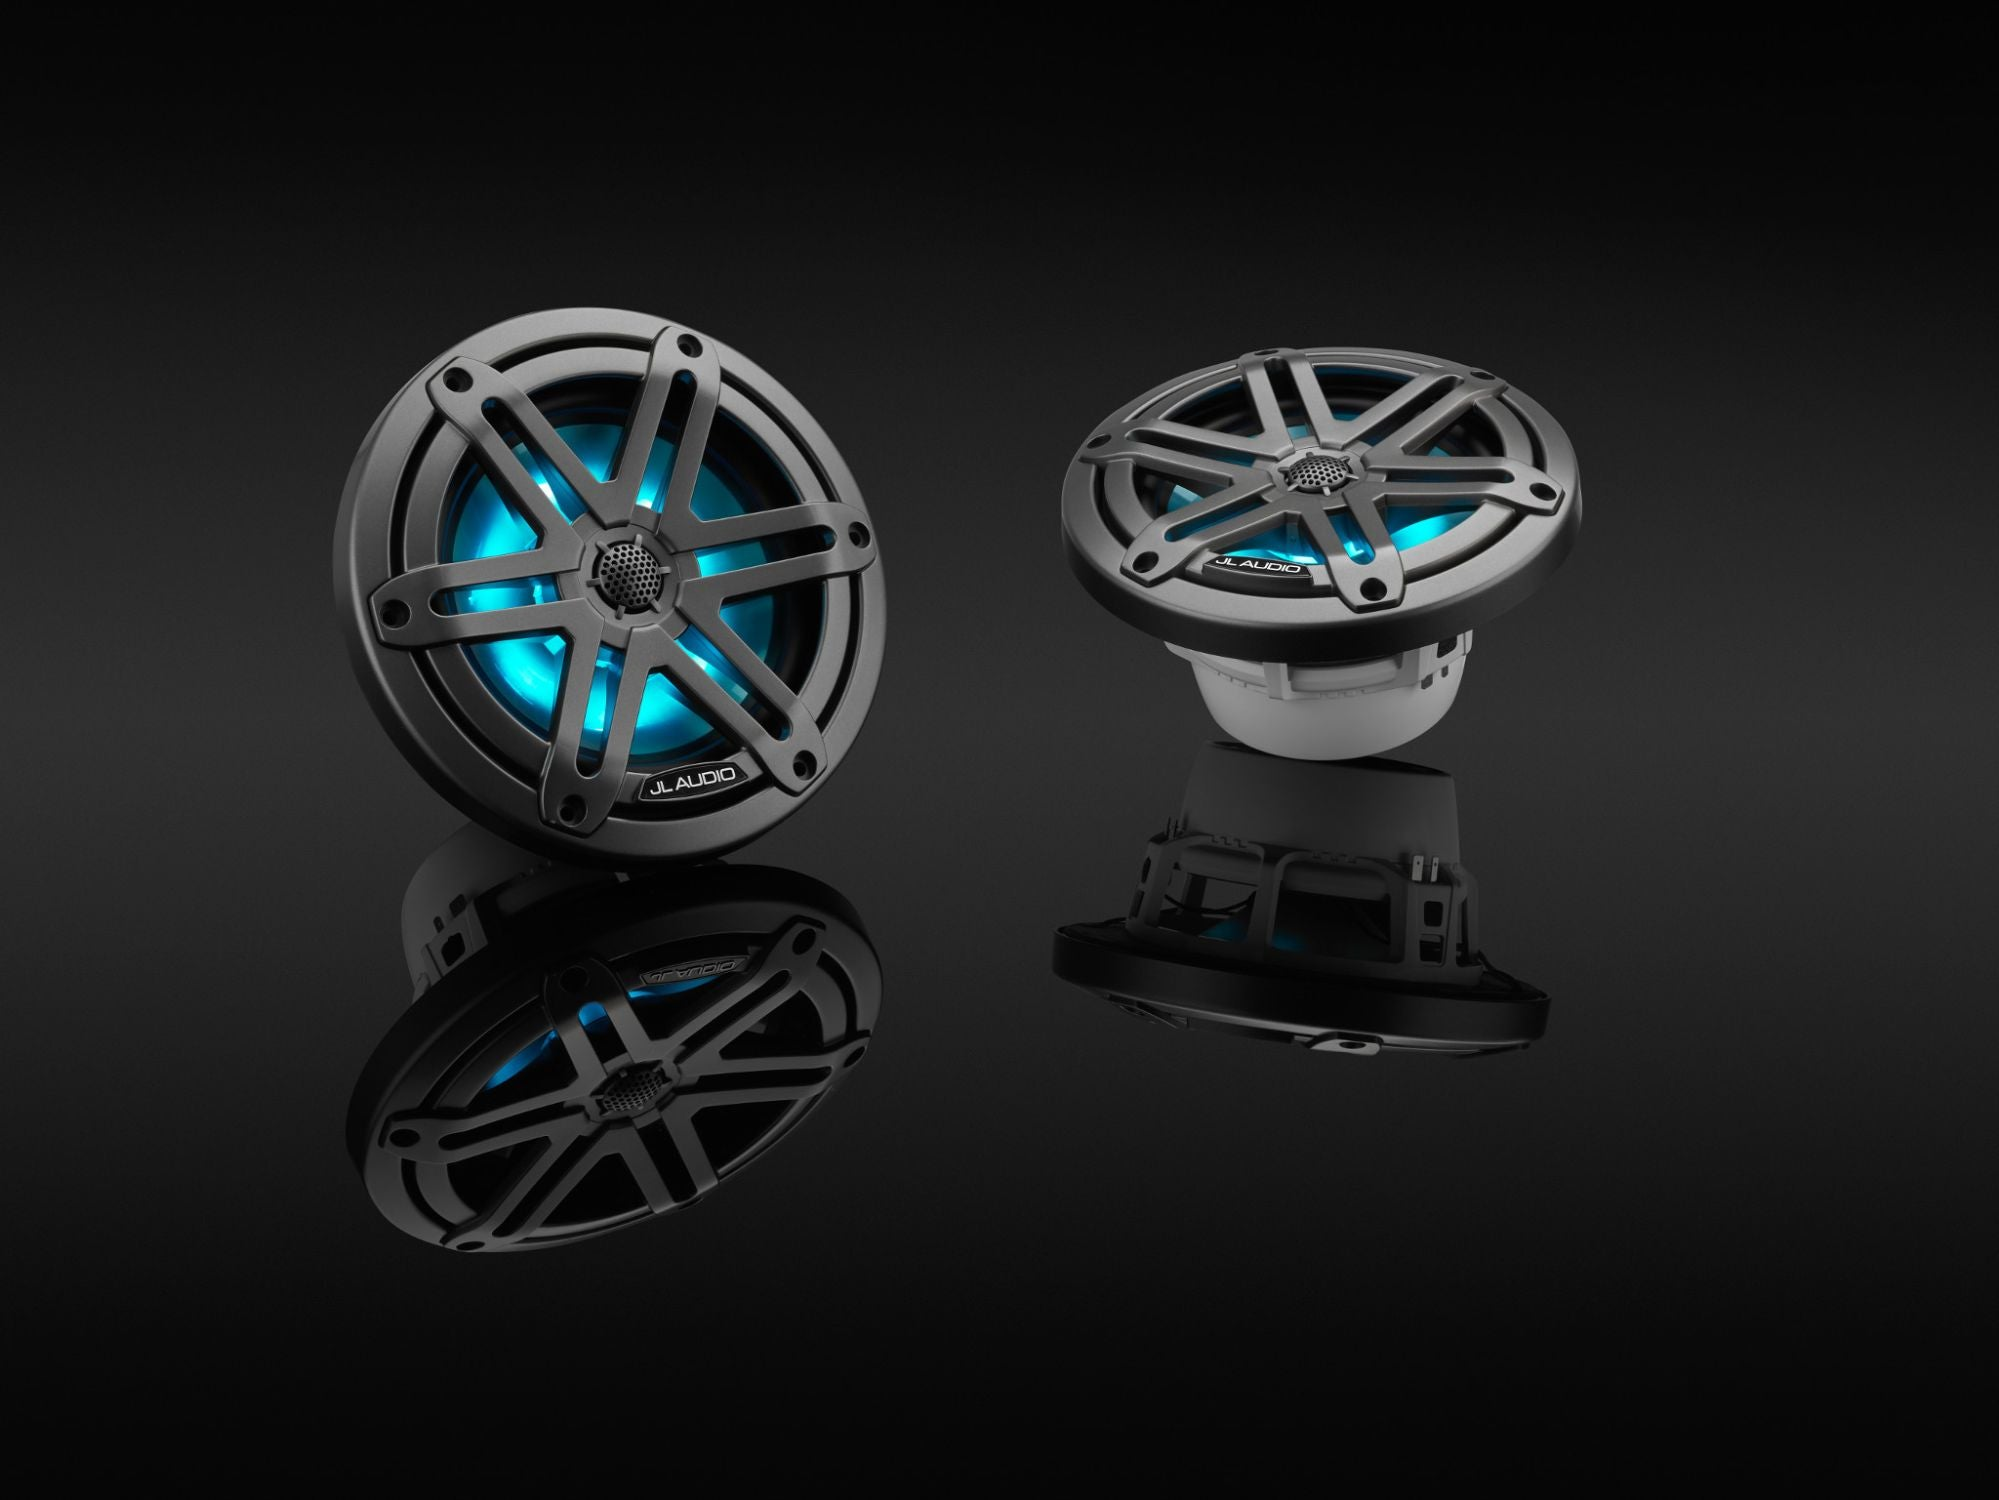 Pair of M3-650X-S-Gm-i Coaxial Speaker on Black, Lit Blue